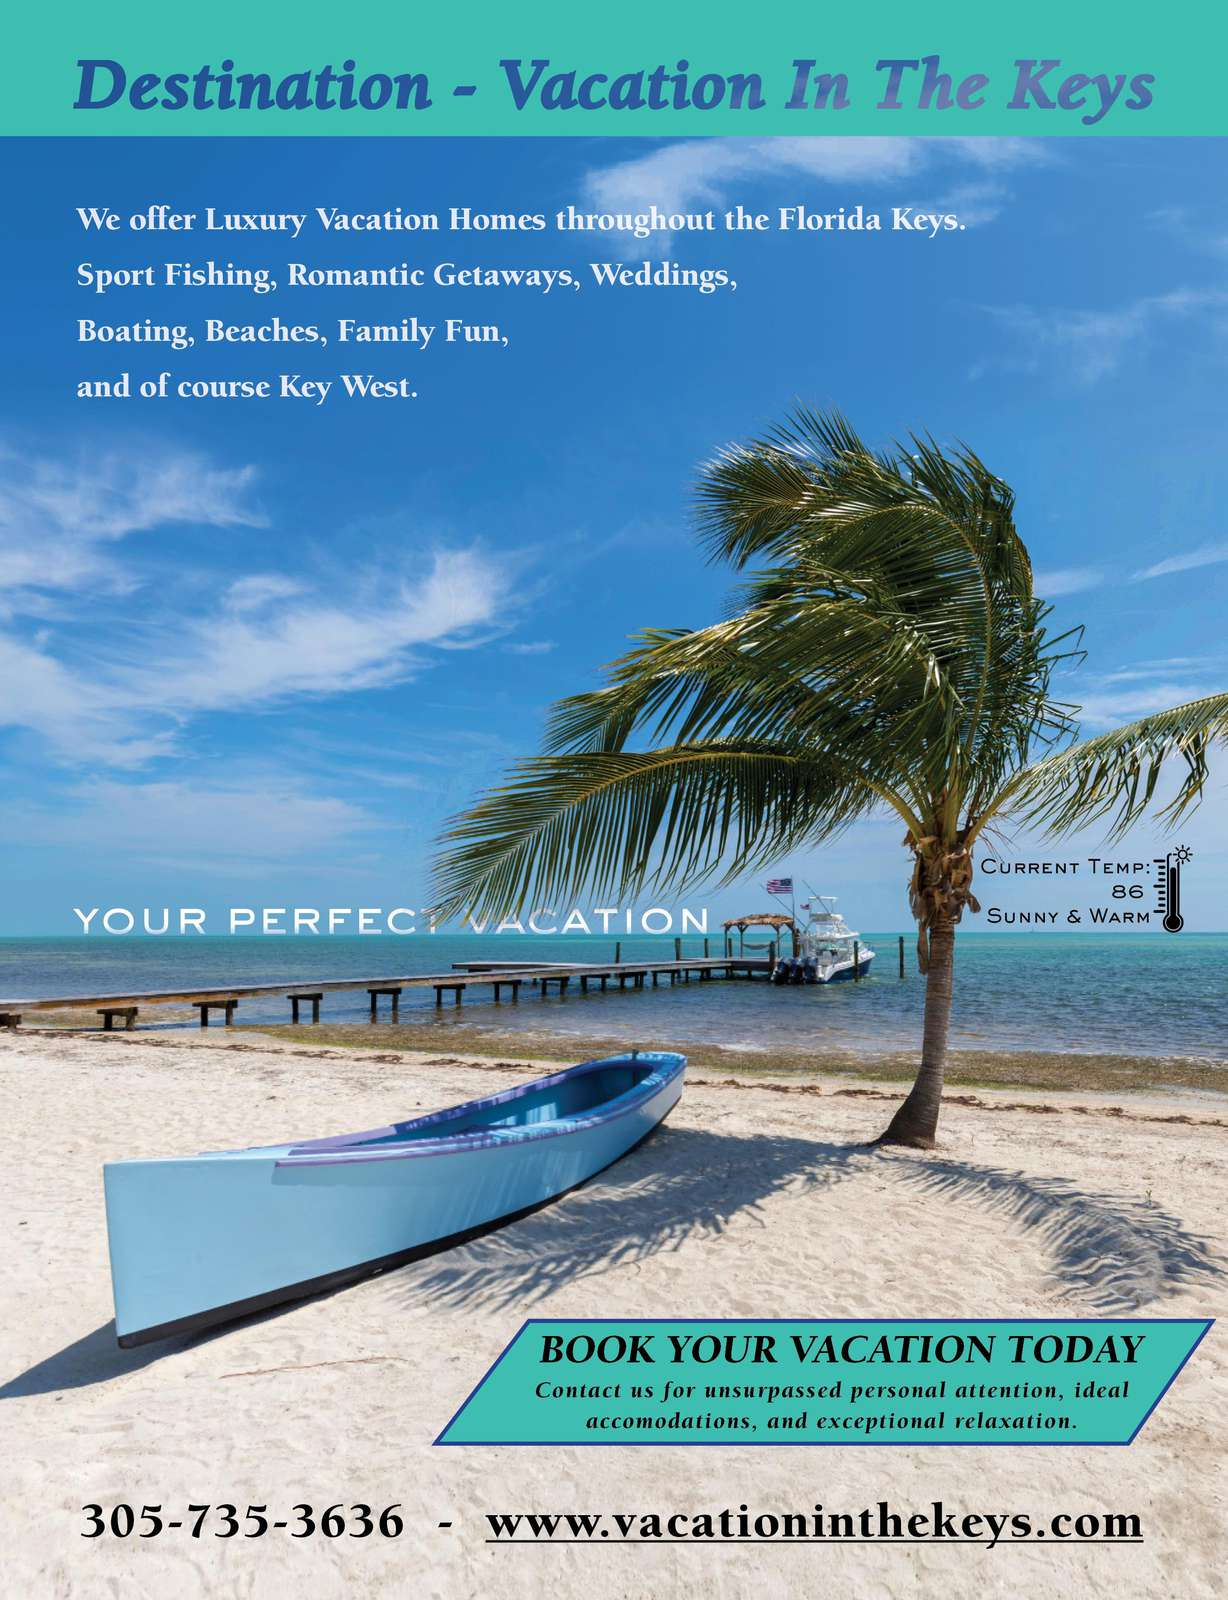 Vacation In The Keys contact us to book your vacation today 305-735-3636